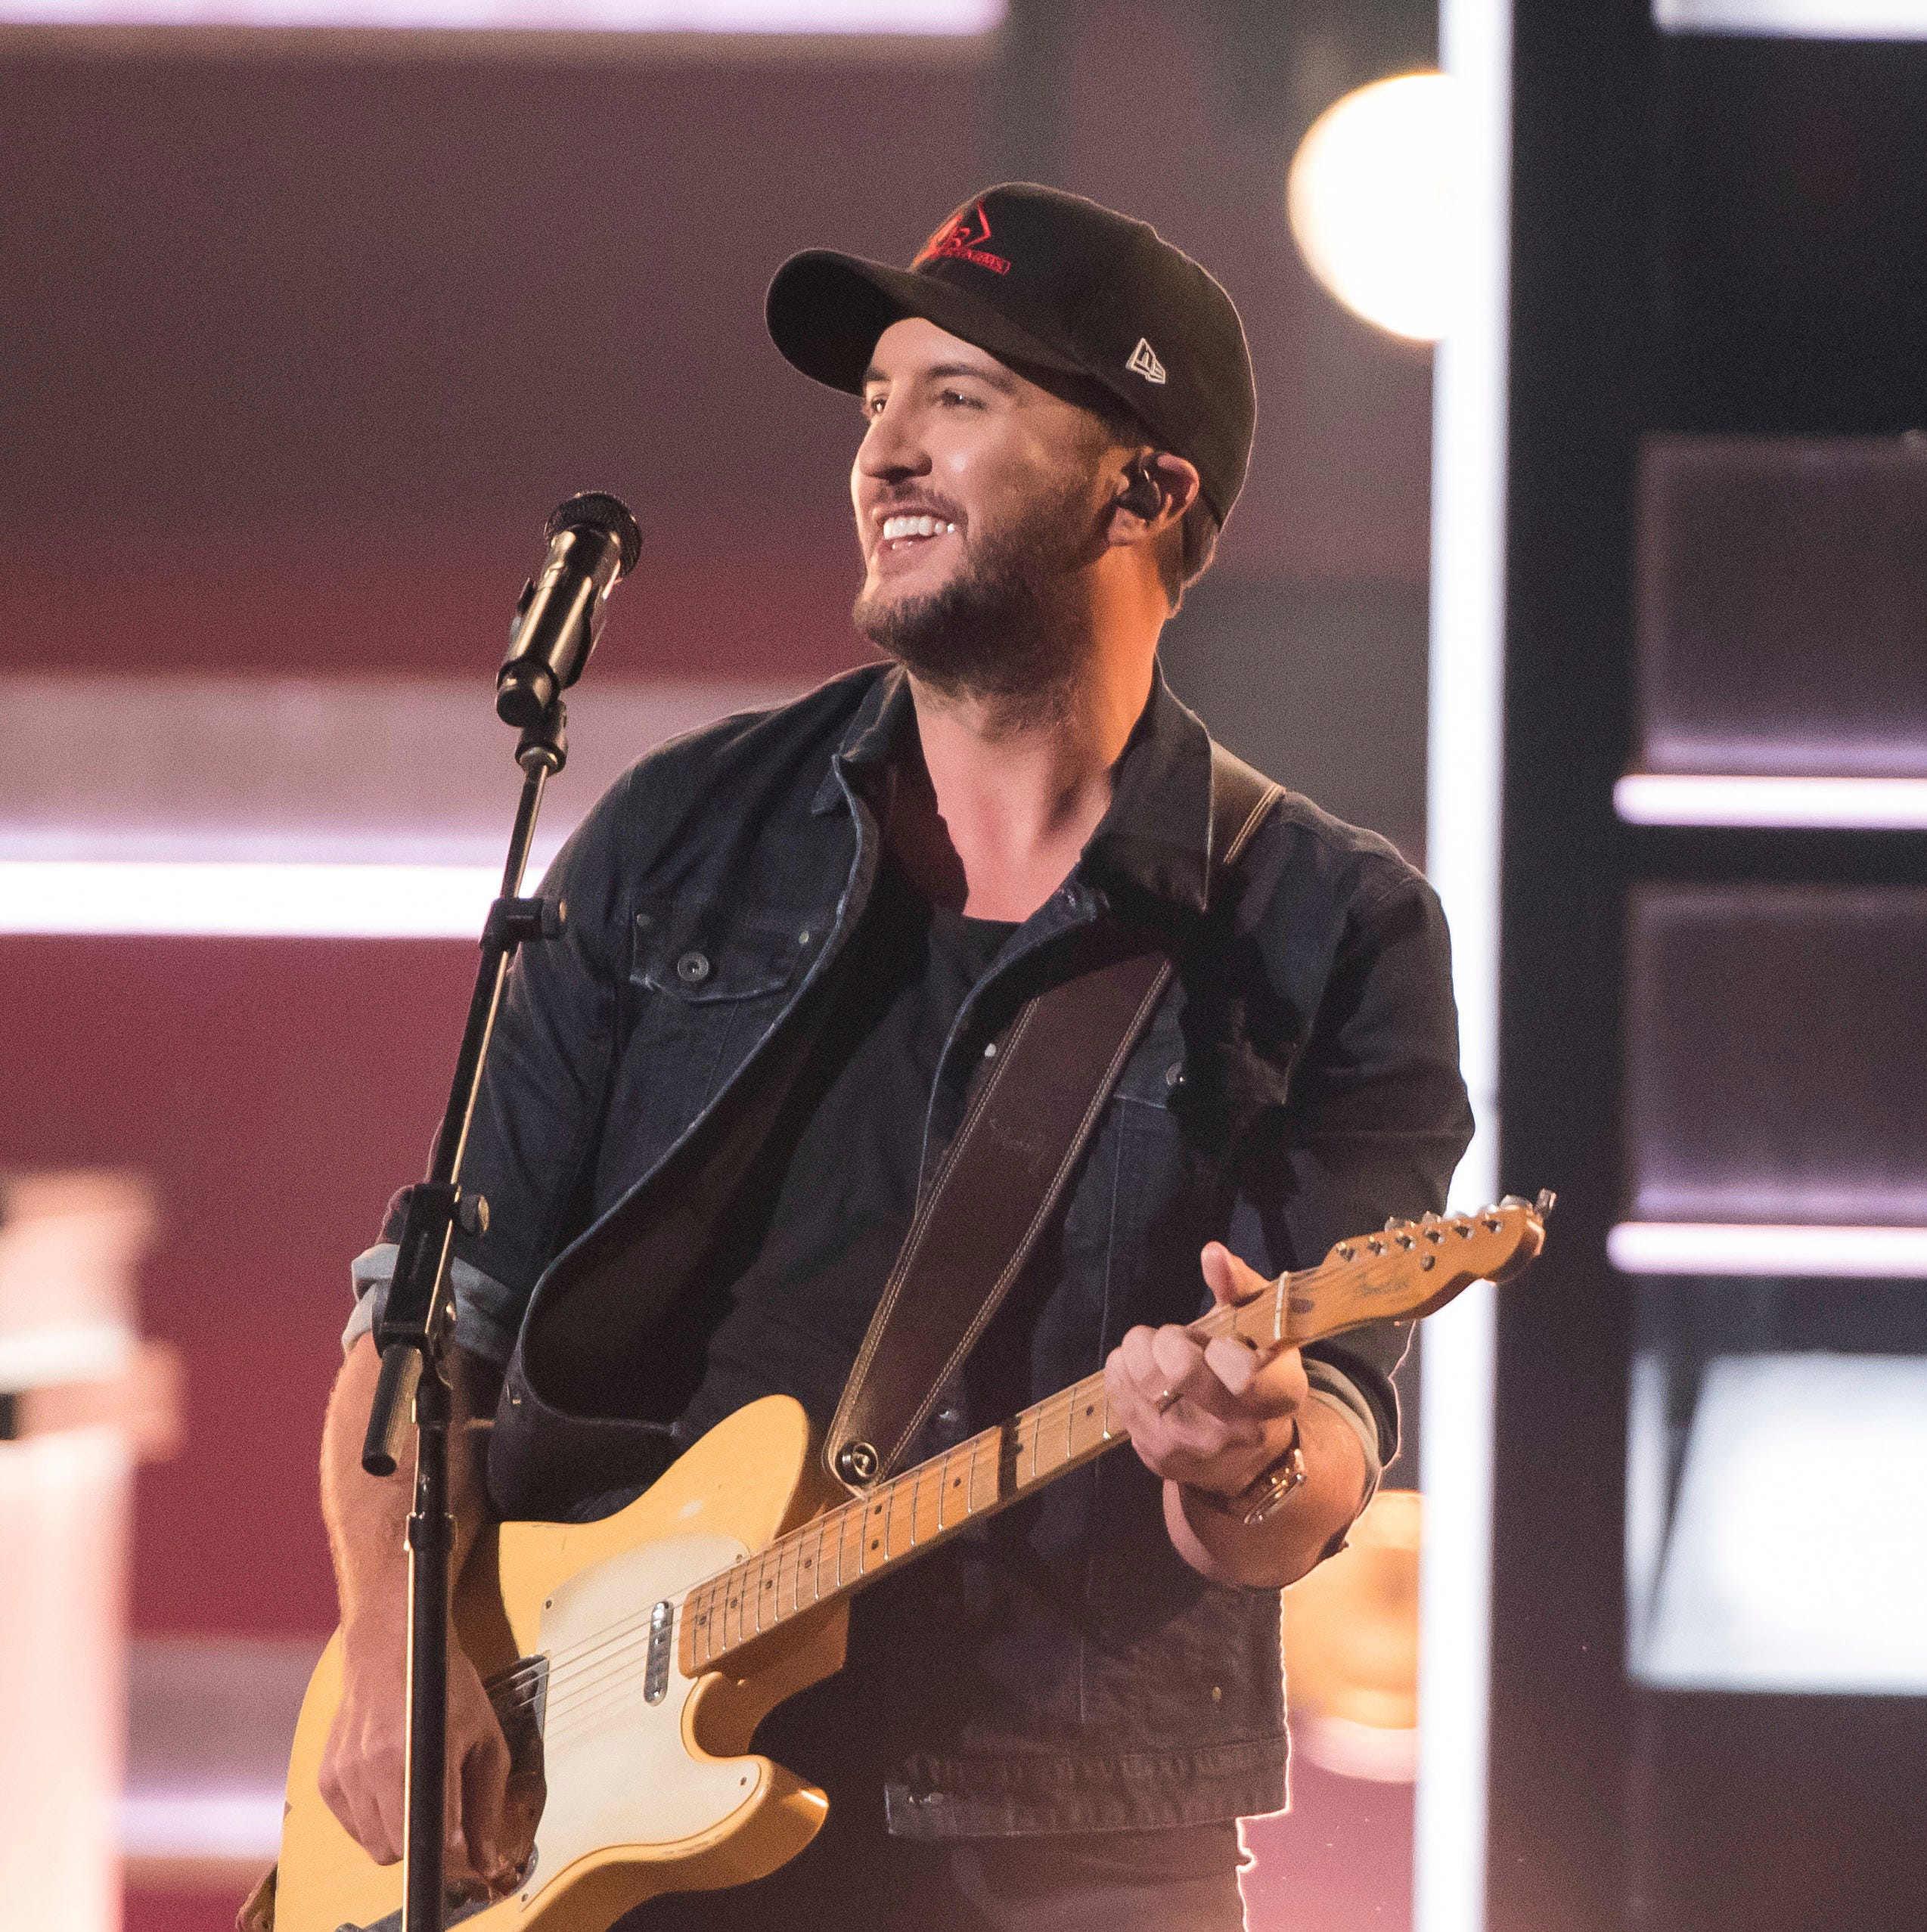 CMAC announces three summer concerts, including  Luke Bryan in July